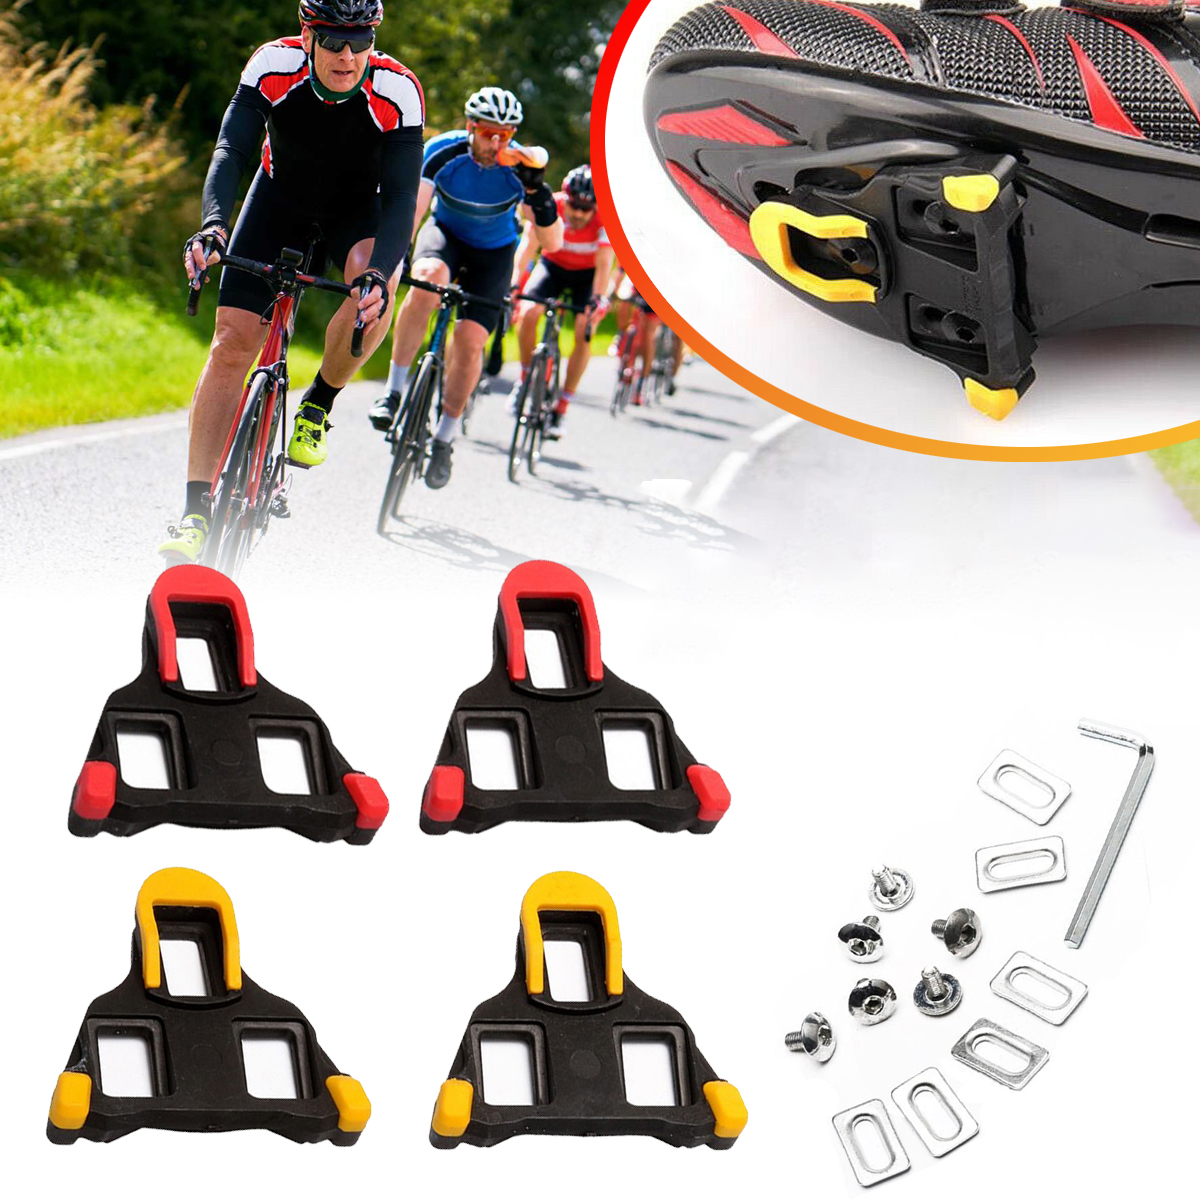 1 Pair Bike Shoes Pedals Breathable Anti-slip Cushioning Shoes C